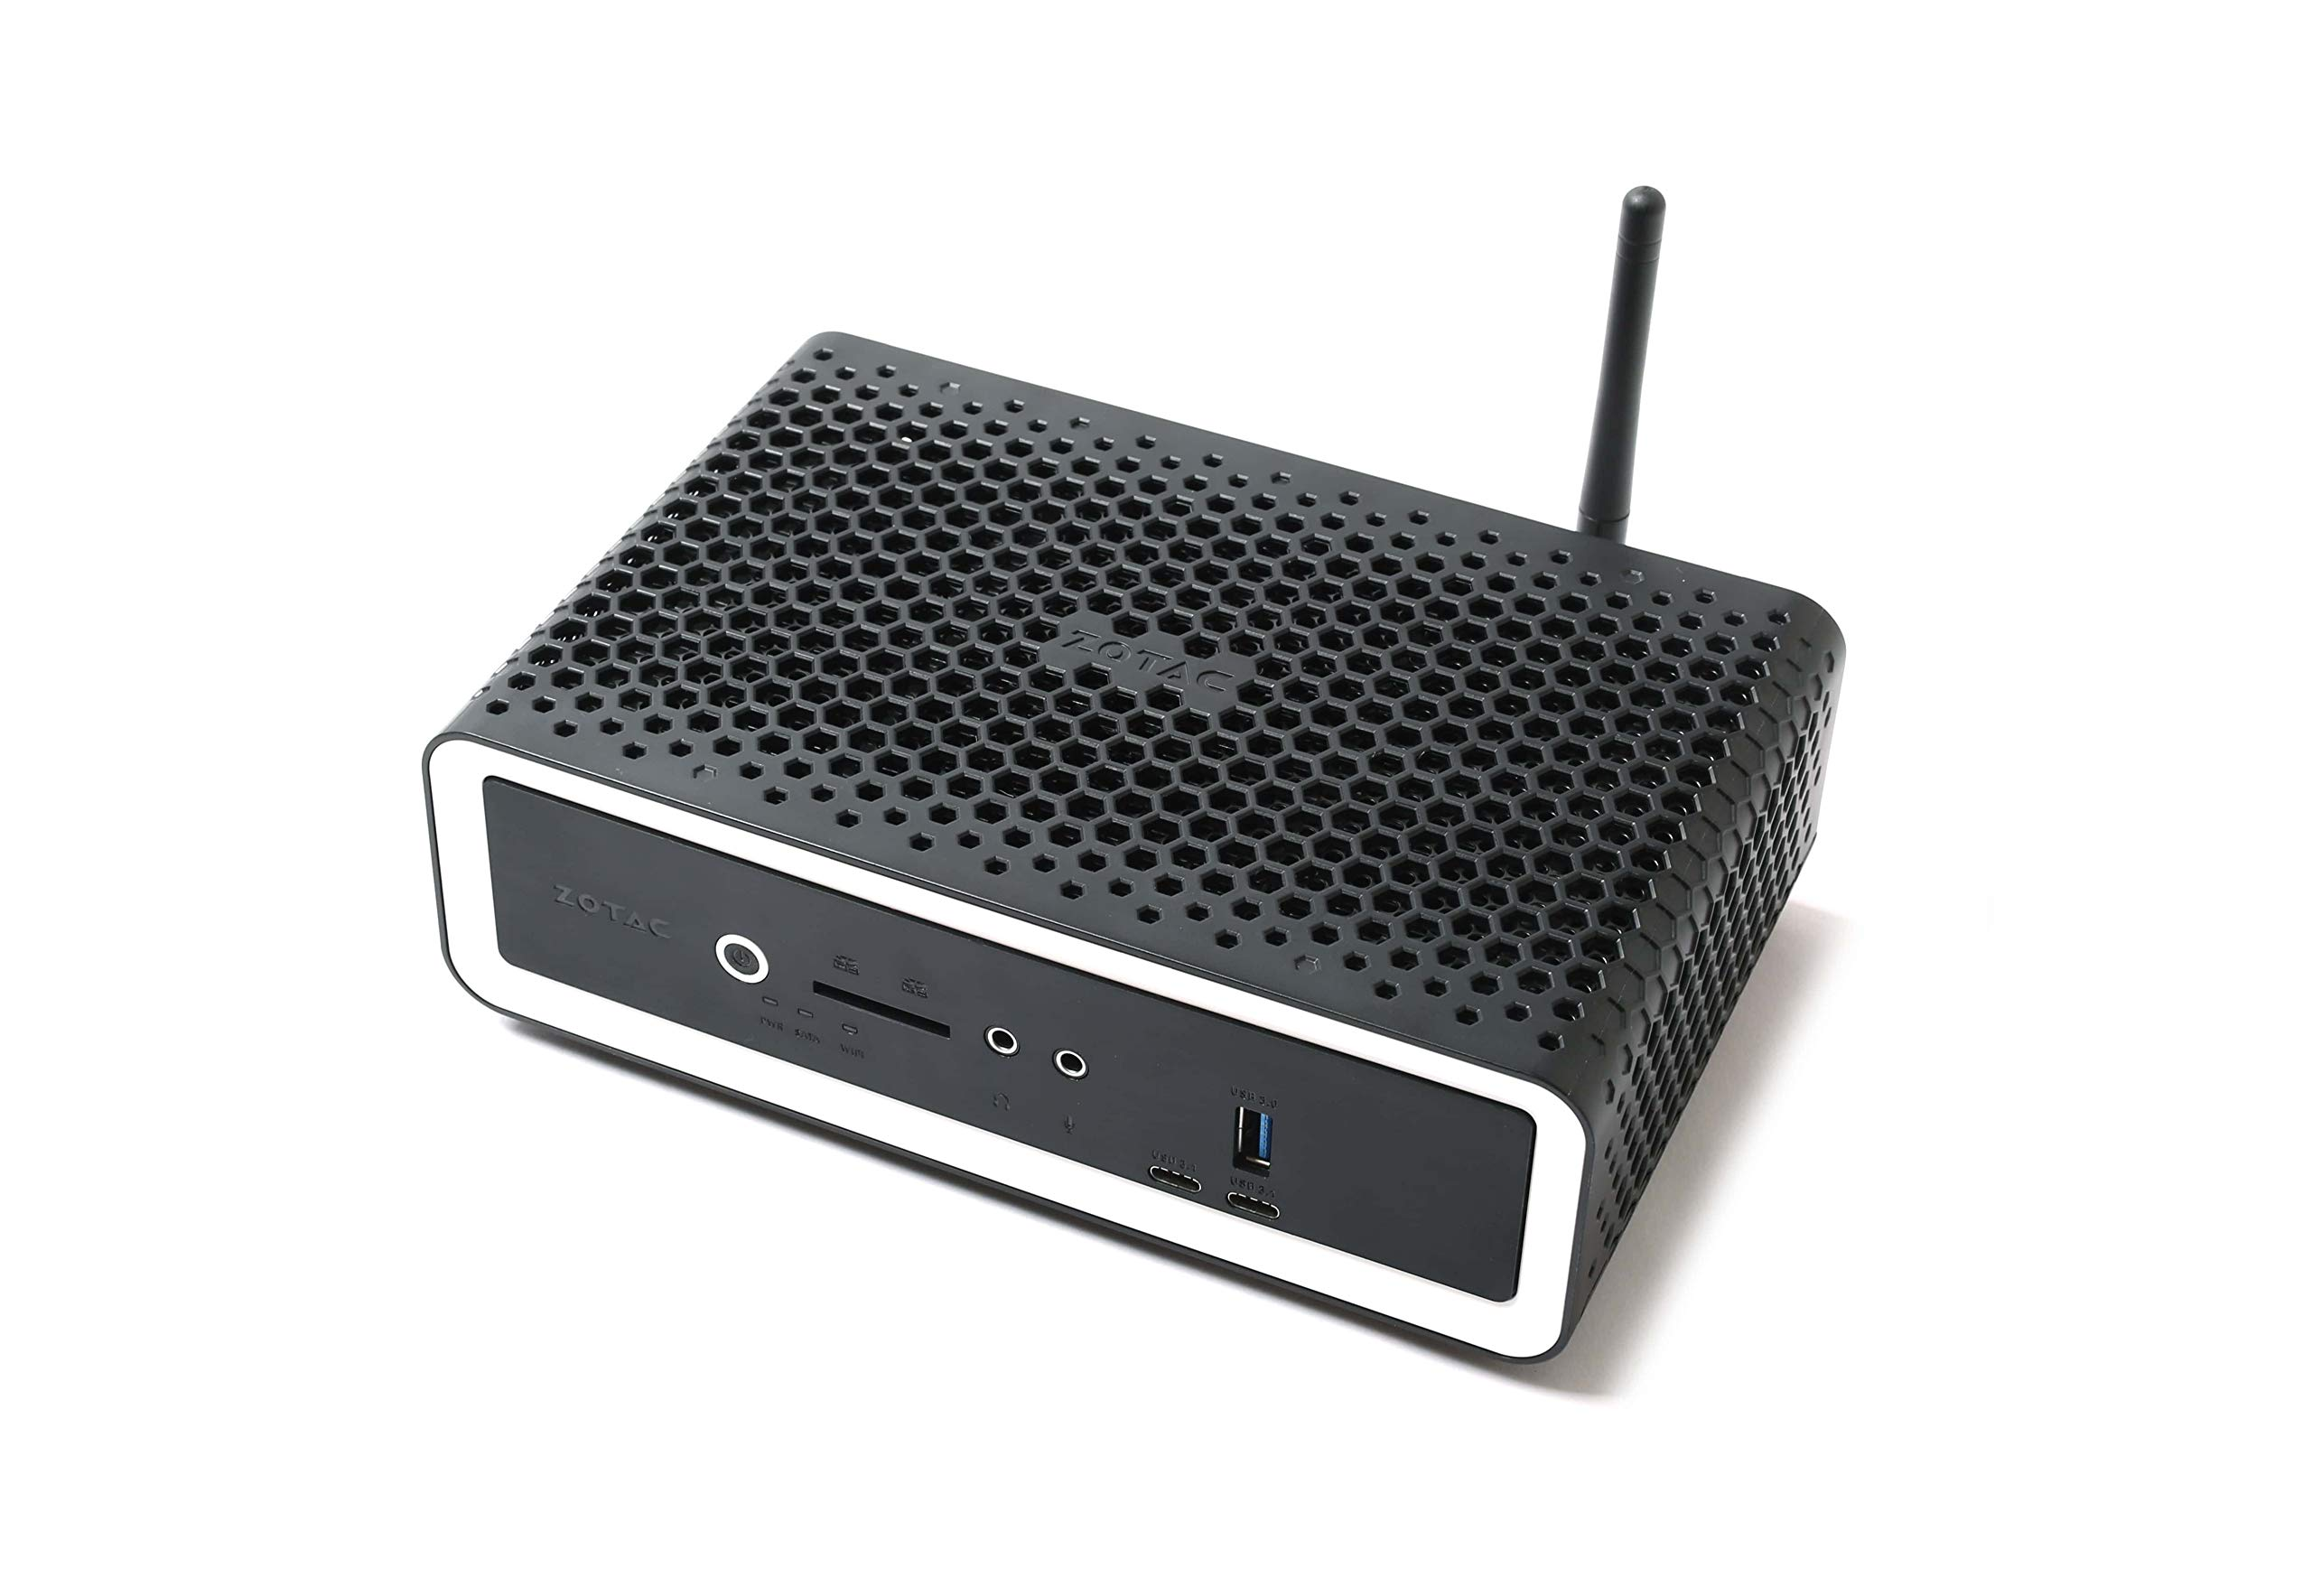 ZOTAC ZBOX CI620 Nano Plus Silent Mini PC 8th Gen Intel Core i3-8130U UHD 620 4GB DDR4/120GB SSD/No OS (ZBOX-CI620NANO-P-U) by ZOTAC (Image #3)